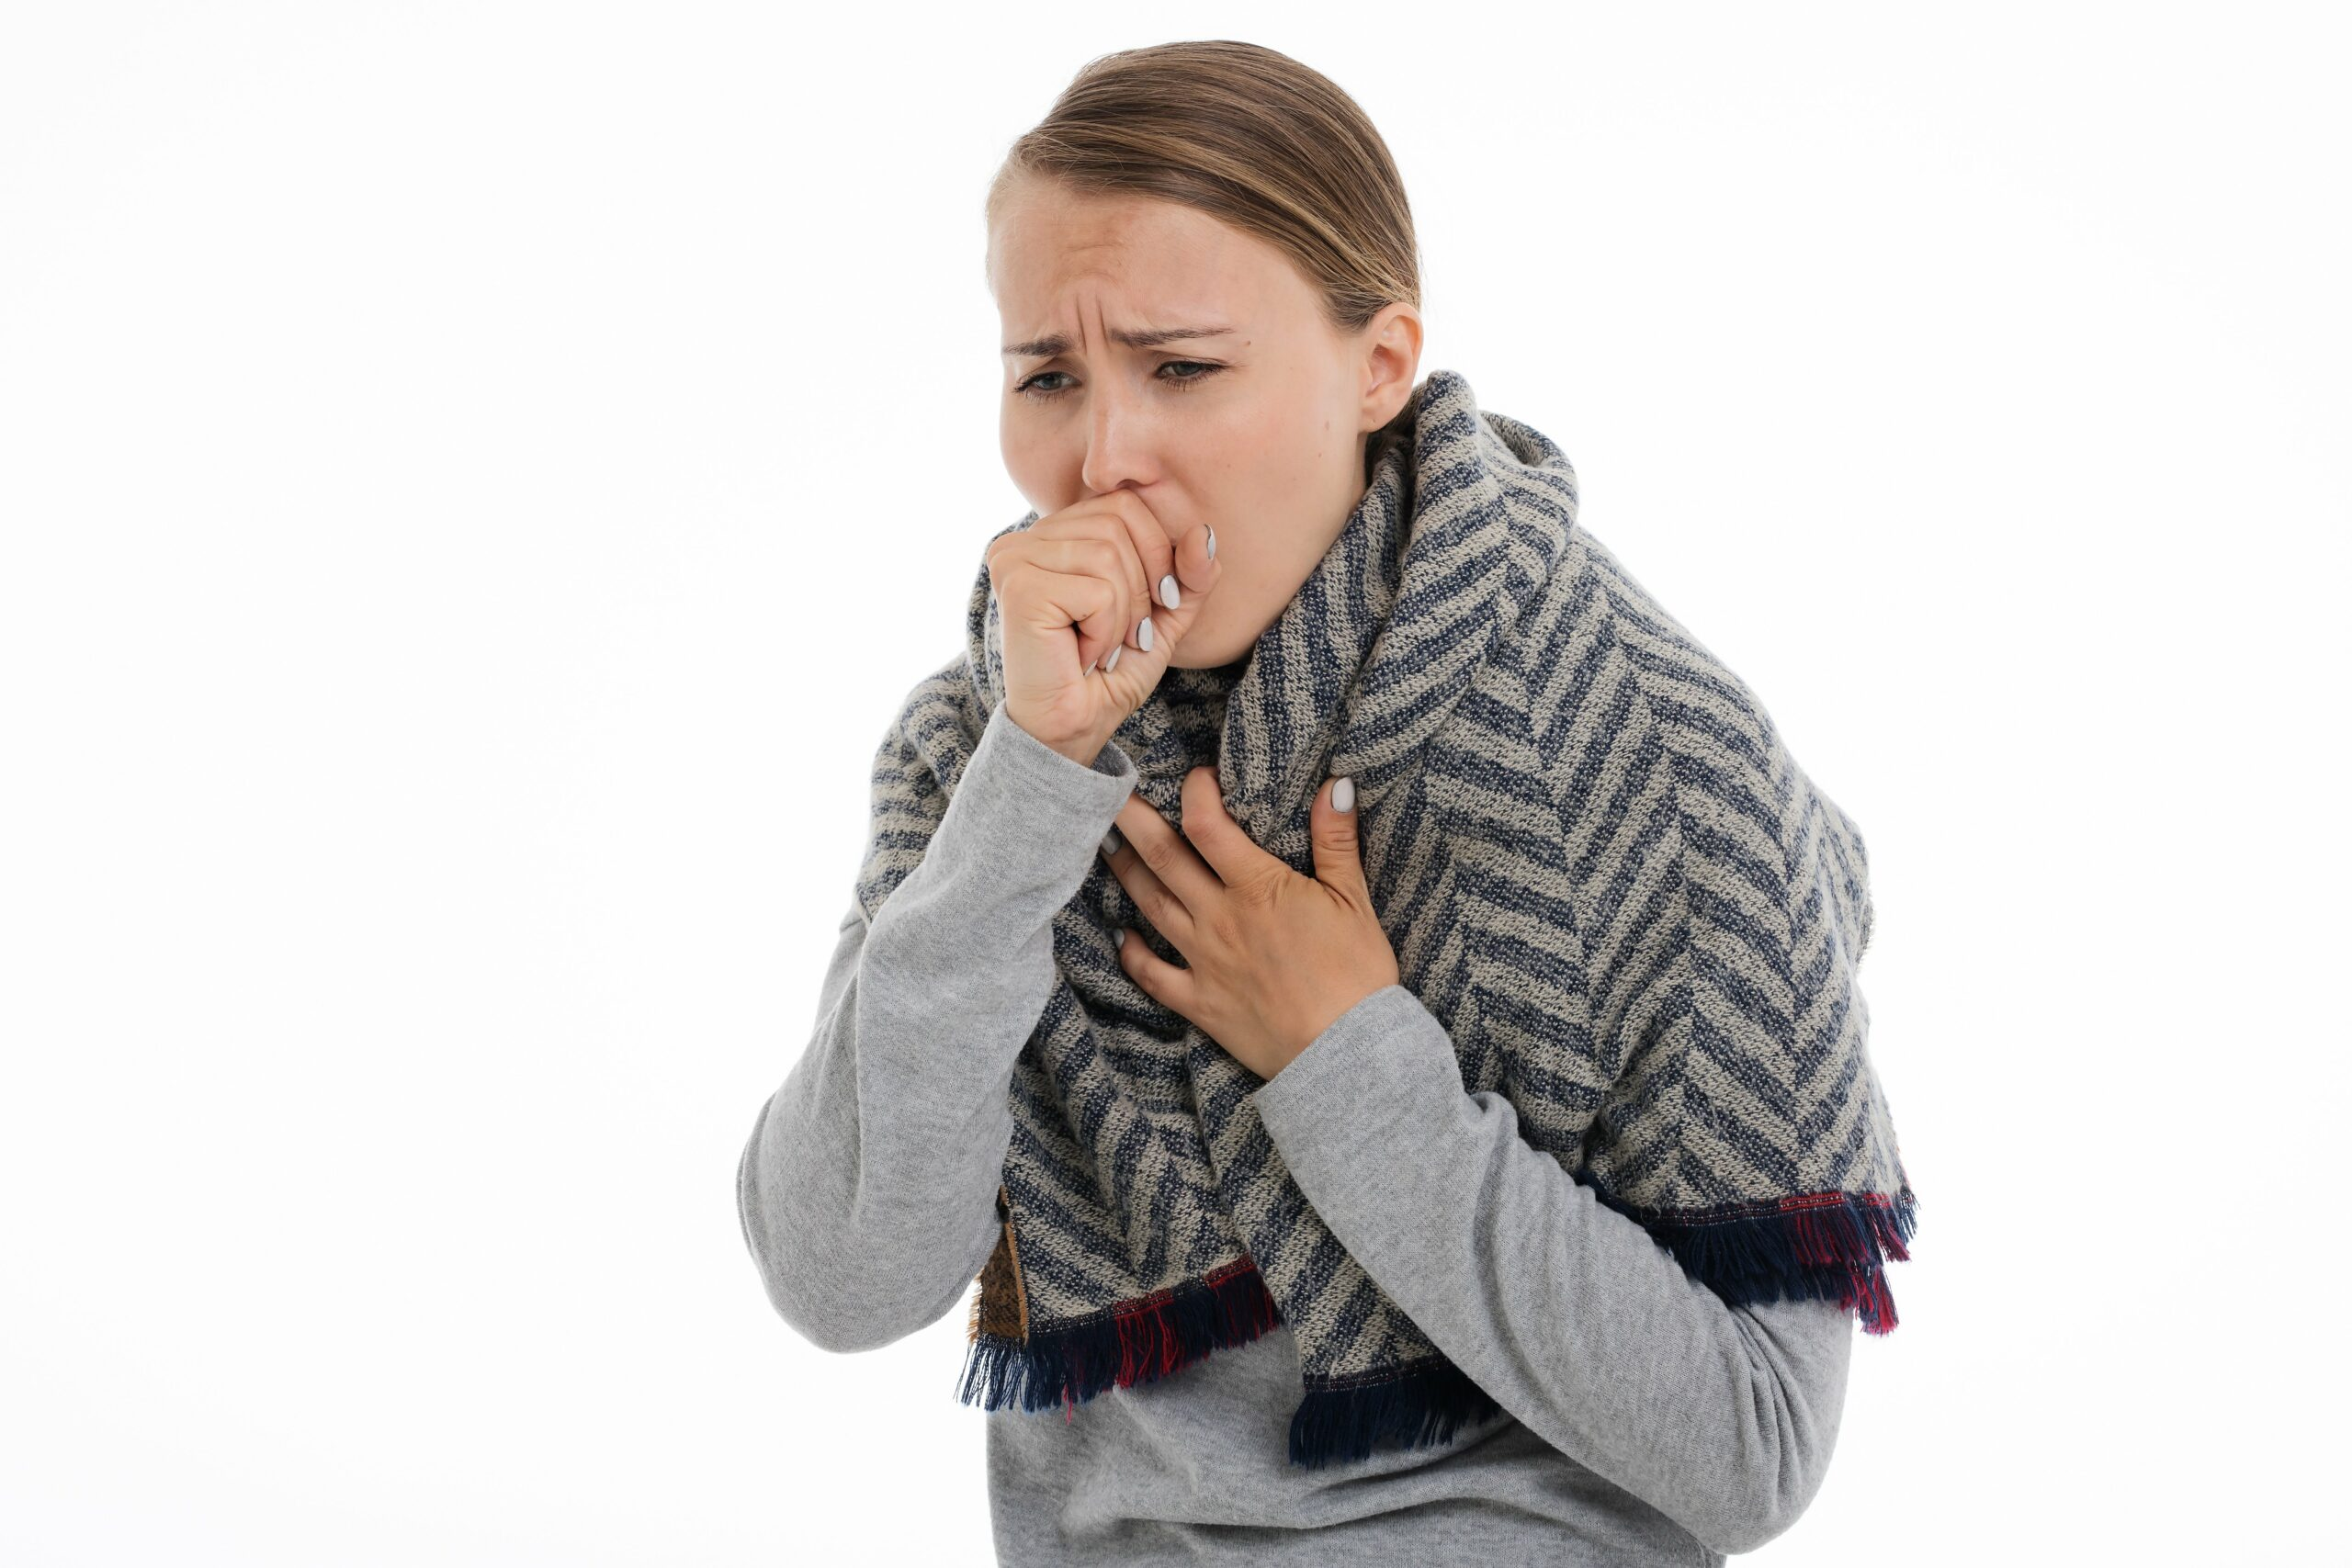 Upper Respiratory Infections and How to Avoid Them